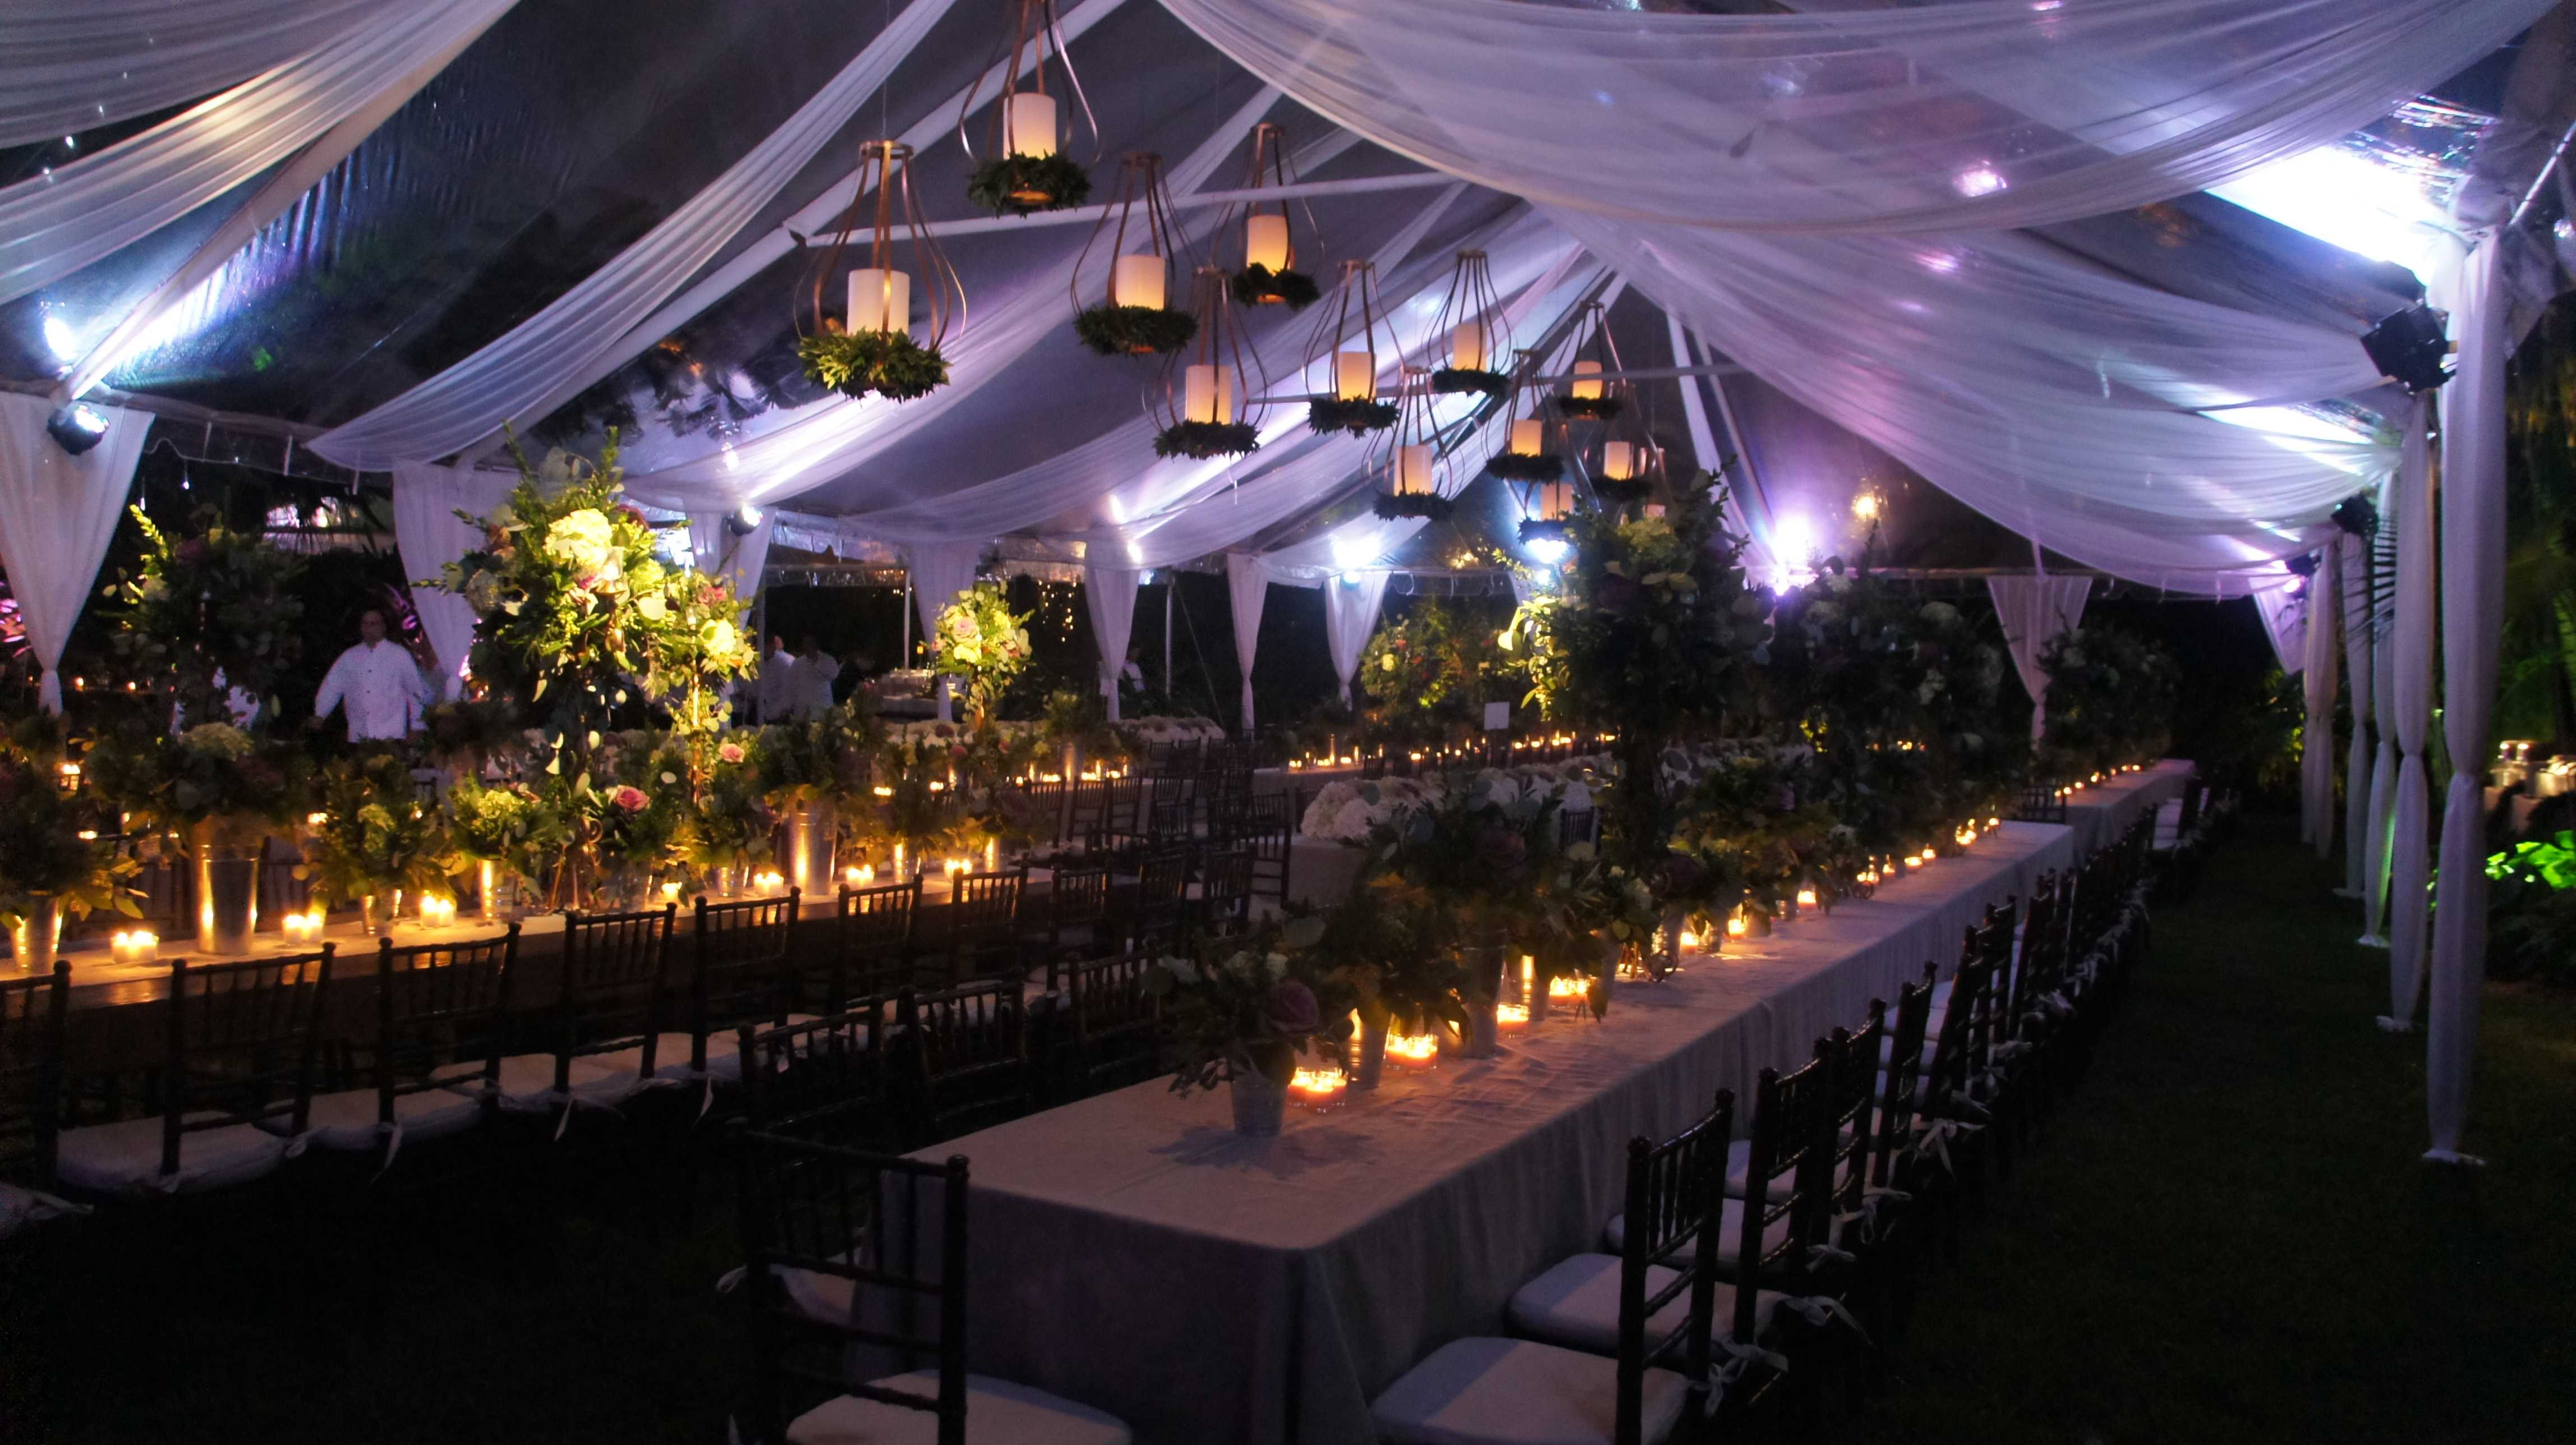 Lighting Ideas For Backyard Party  9 Great Party Tent Lighting Ideas For Outdoor Events